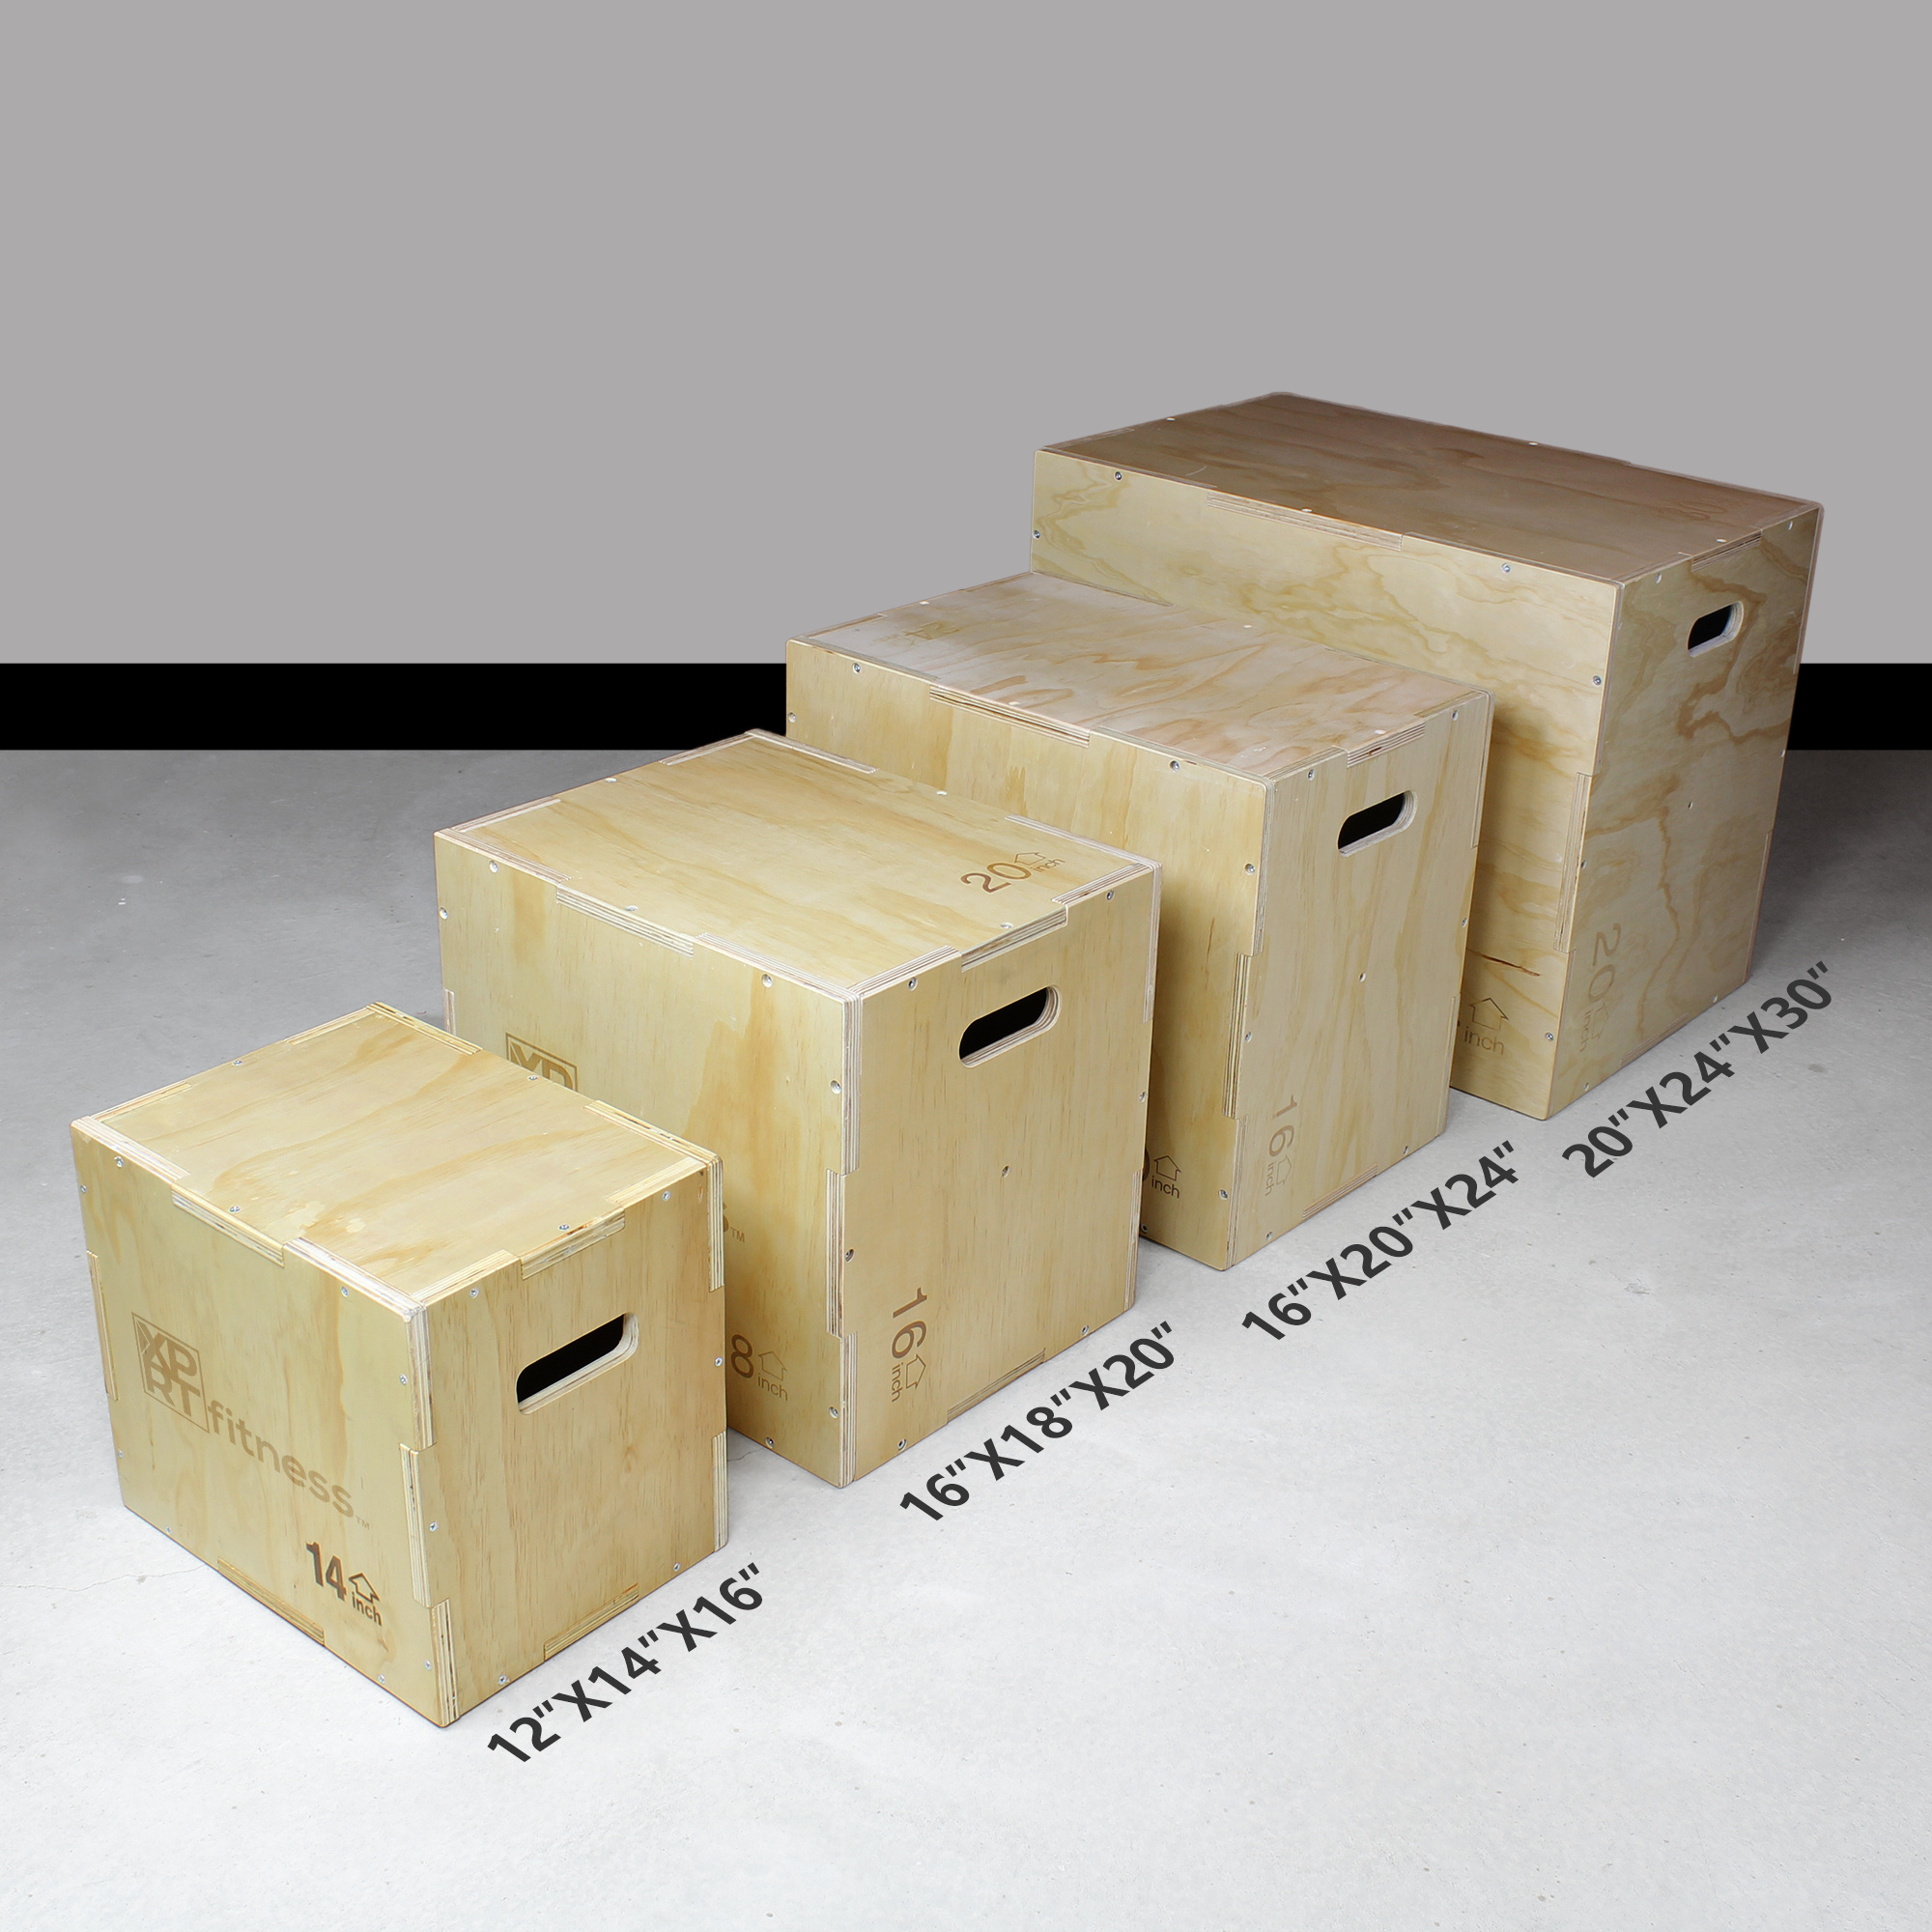 Details about  /XPRT Fitness 3 in 1 Wood Plyometric Jump Box Fitness Training Conditioning Step